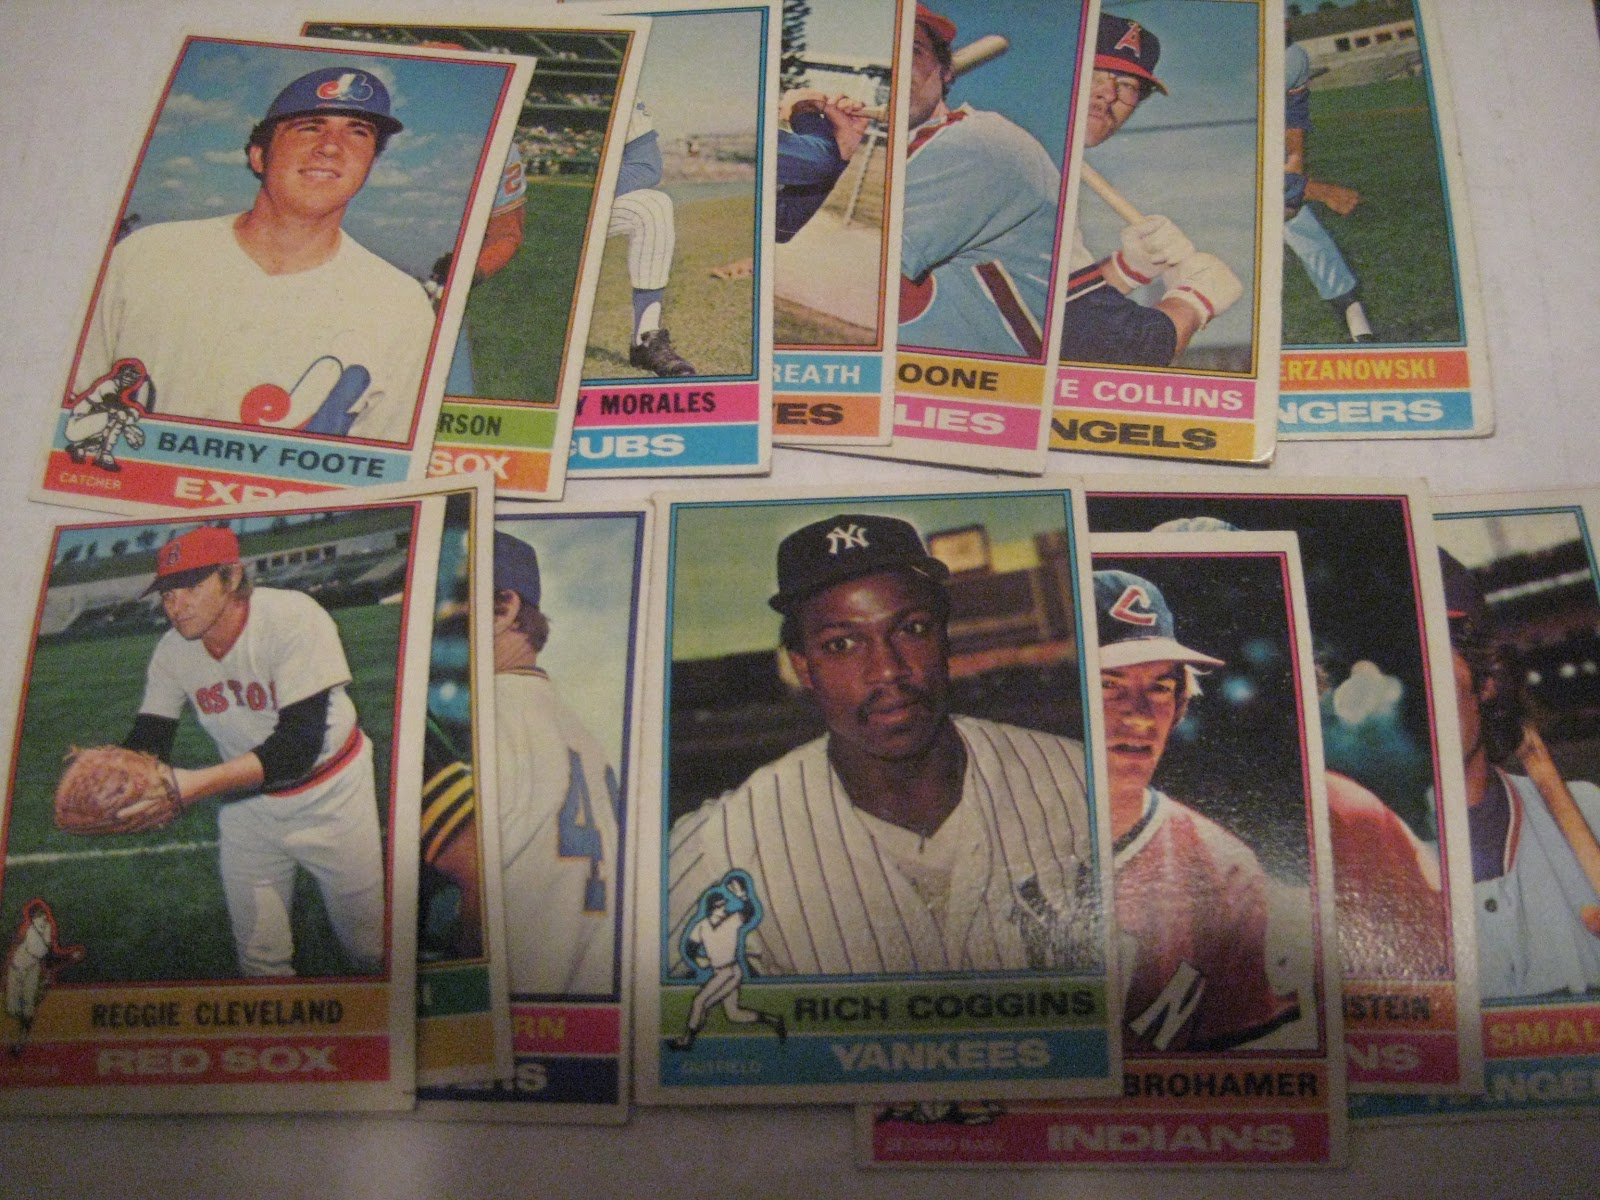 Baseball Cards Come To Life Trade With The Collective Mind